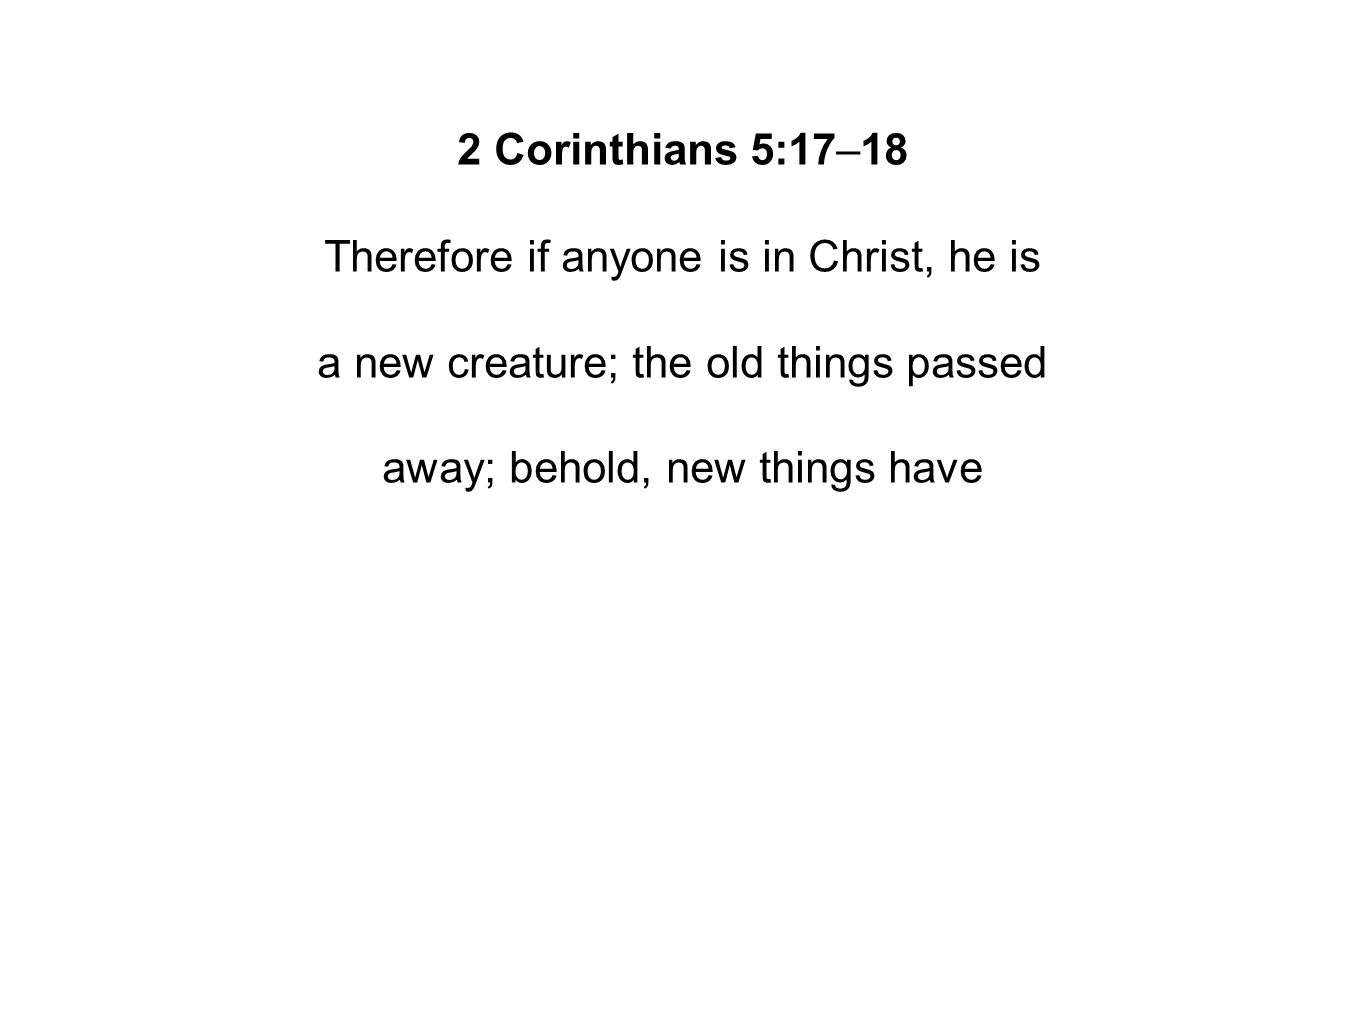 2 Corinthians 5:17–18 Therefore if anyone is in Christ, he is a new creature; the old things passed away; behold, new things have